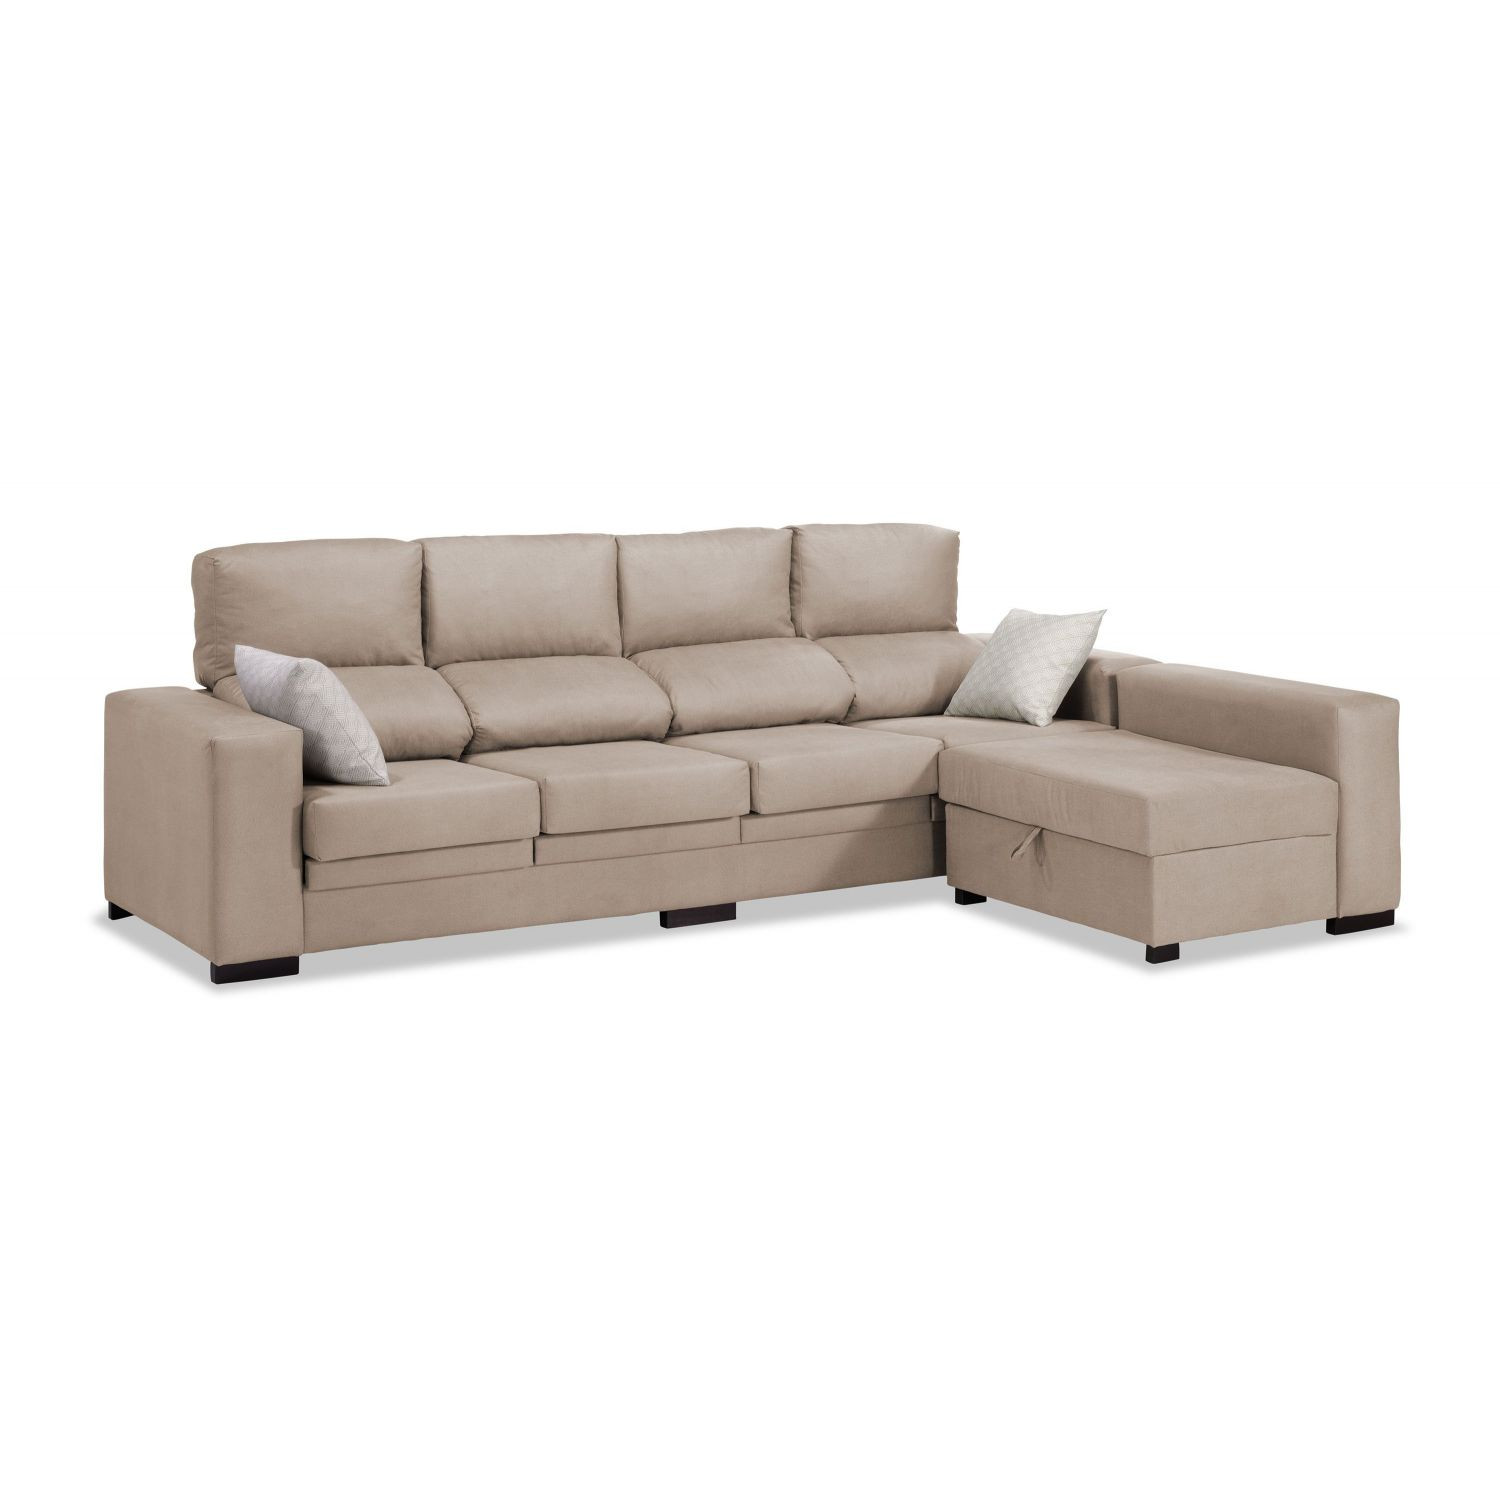 Sofa Chaise Longue 4 Plazas Contemporáneo sofá Chaise Longue 4 Plazas Beige Reclinable Extensible Of 47  Único sofa Chaise Longue 4 Plazas